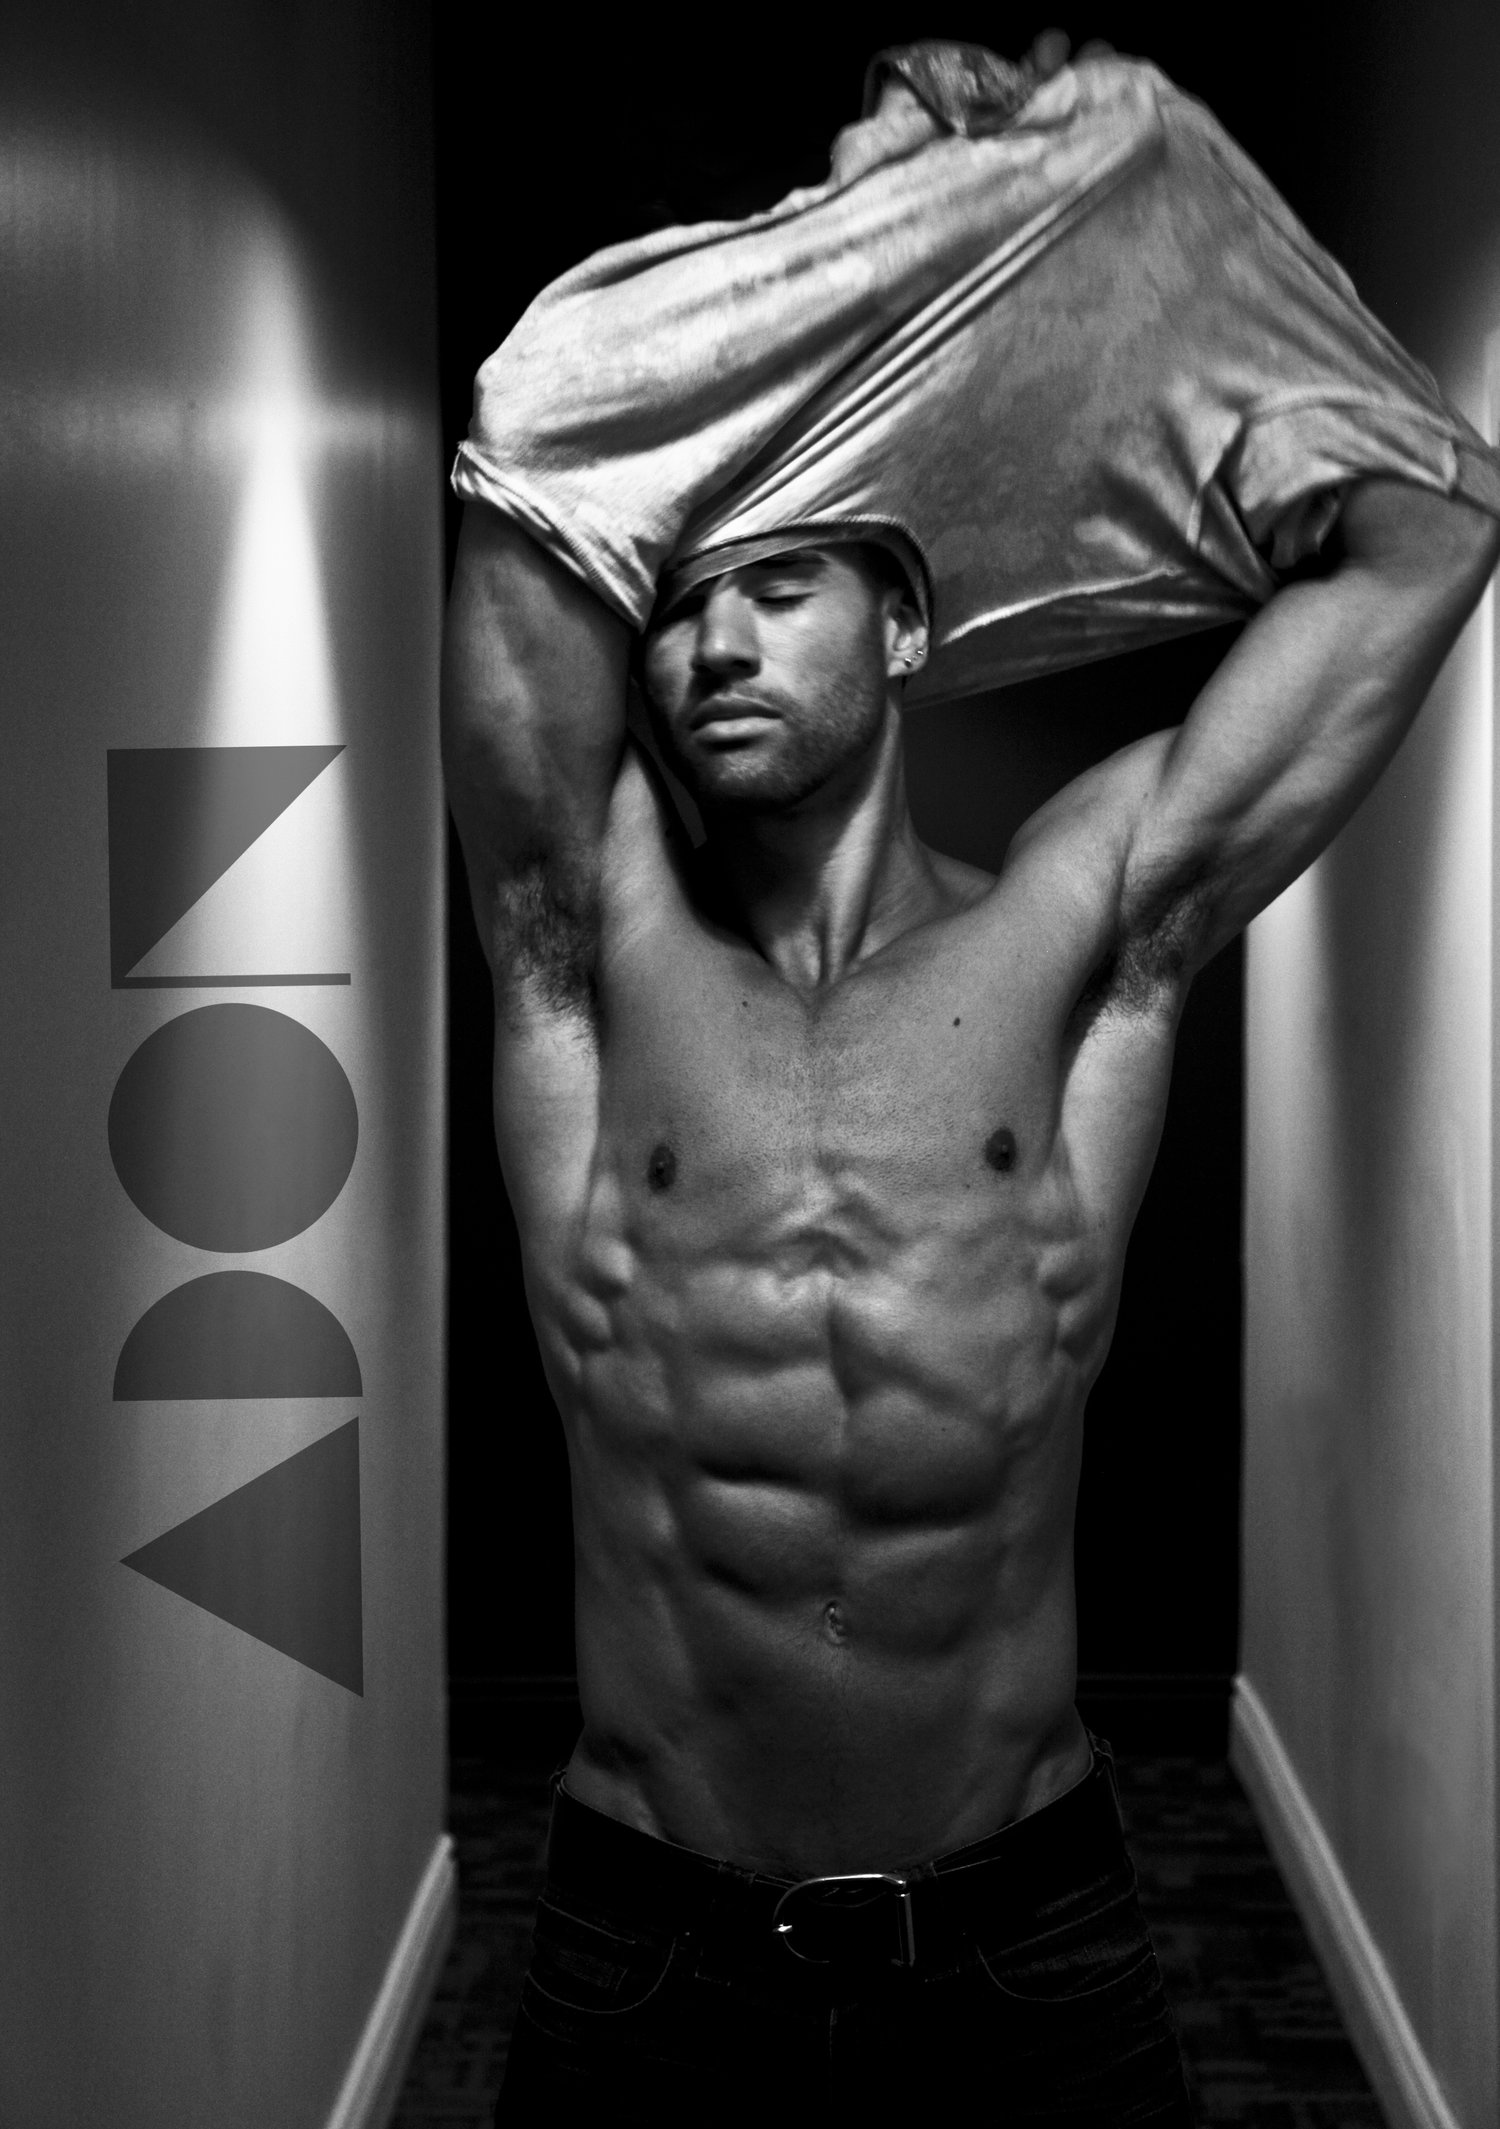 Adon Exclusive: Model Kevin Geyson By Perry Senecal